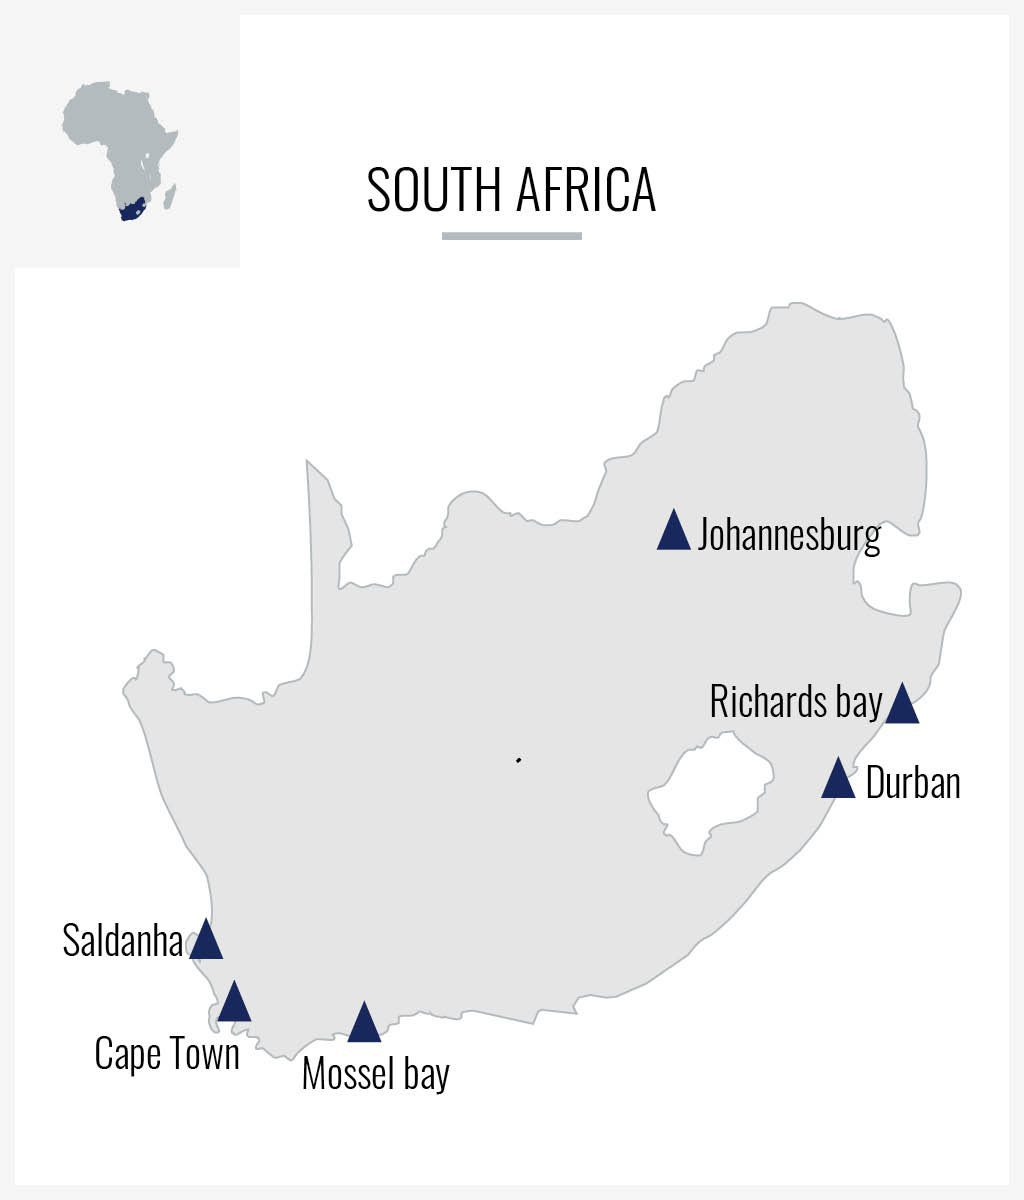 https://amt-sa.com/wp-content/uploads/2020/01/cartes-south-africa-e1578481505565.jpg